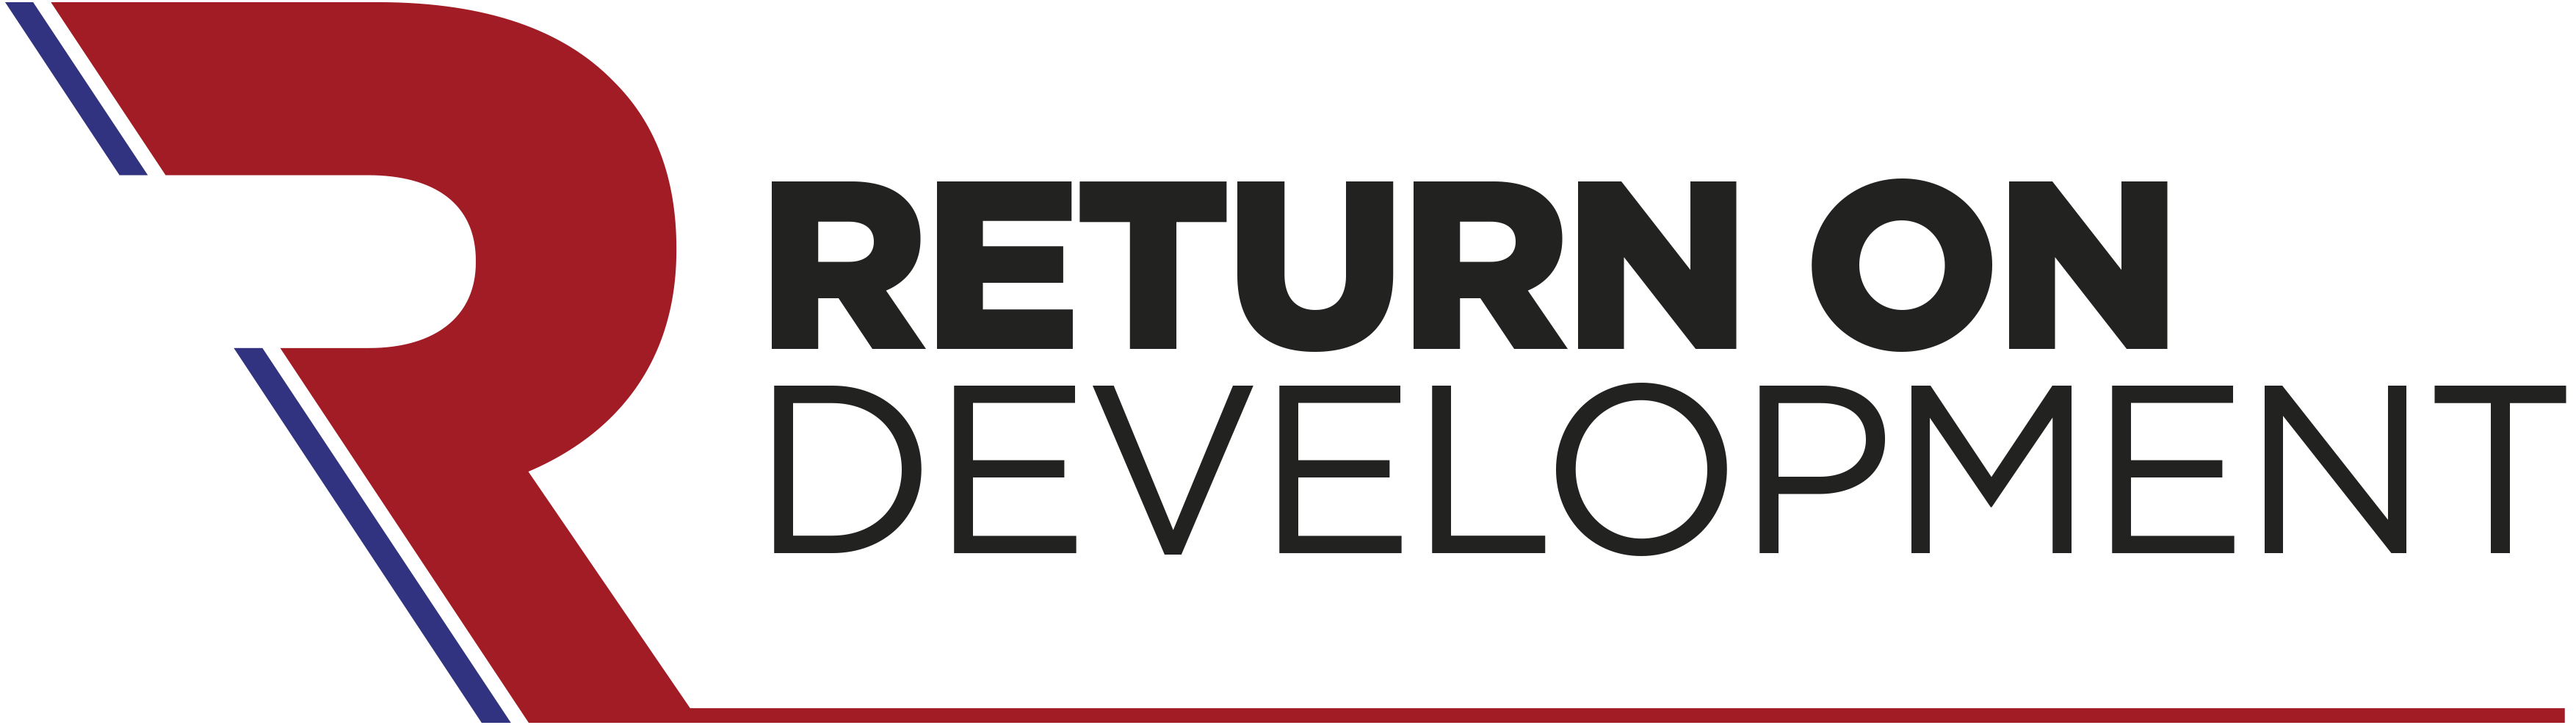 Return on Development